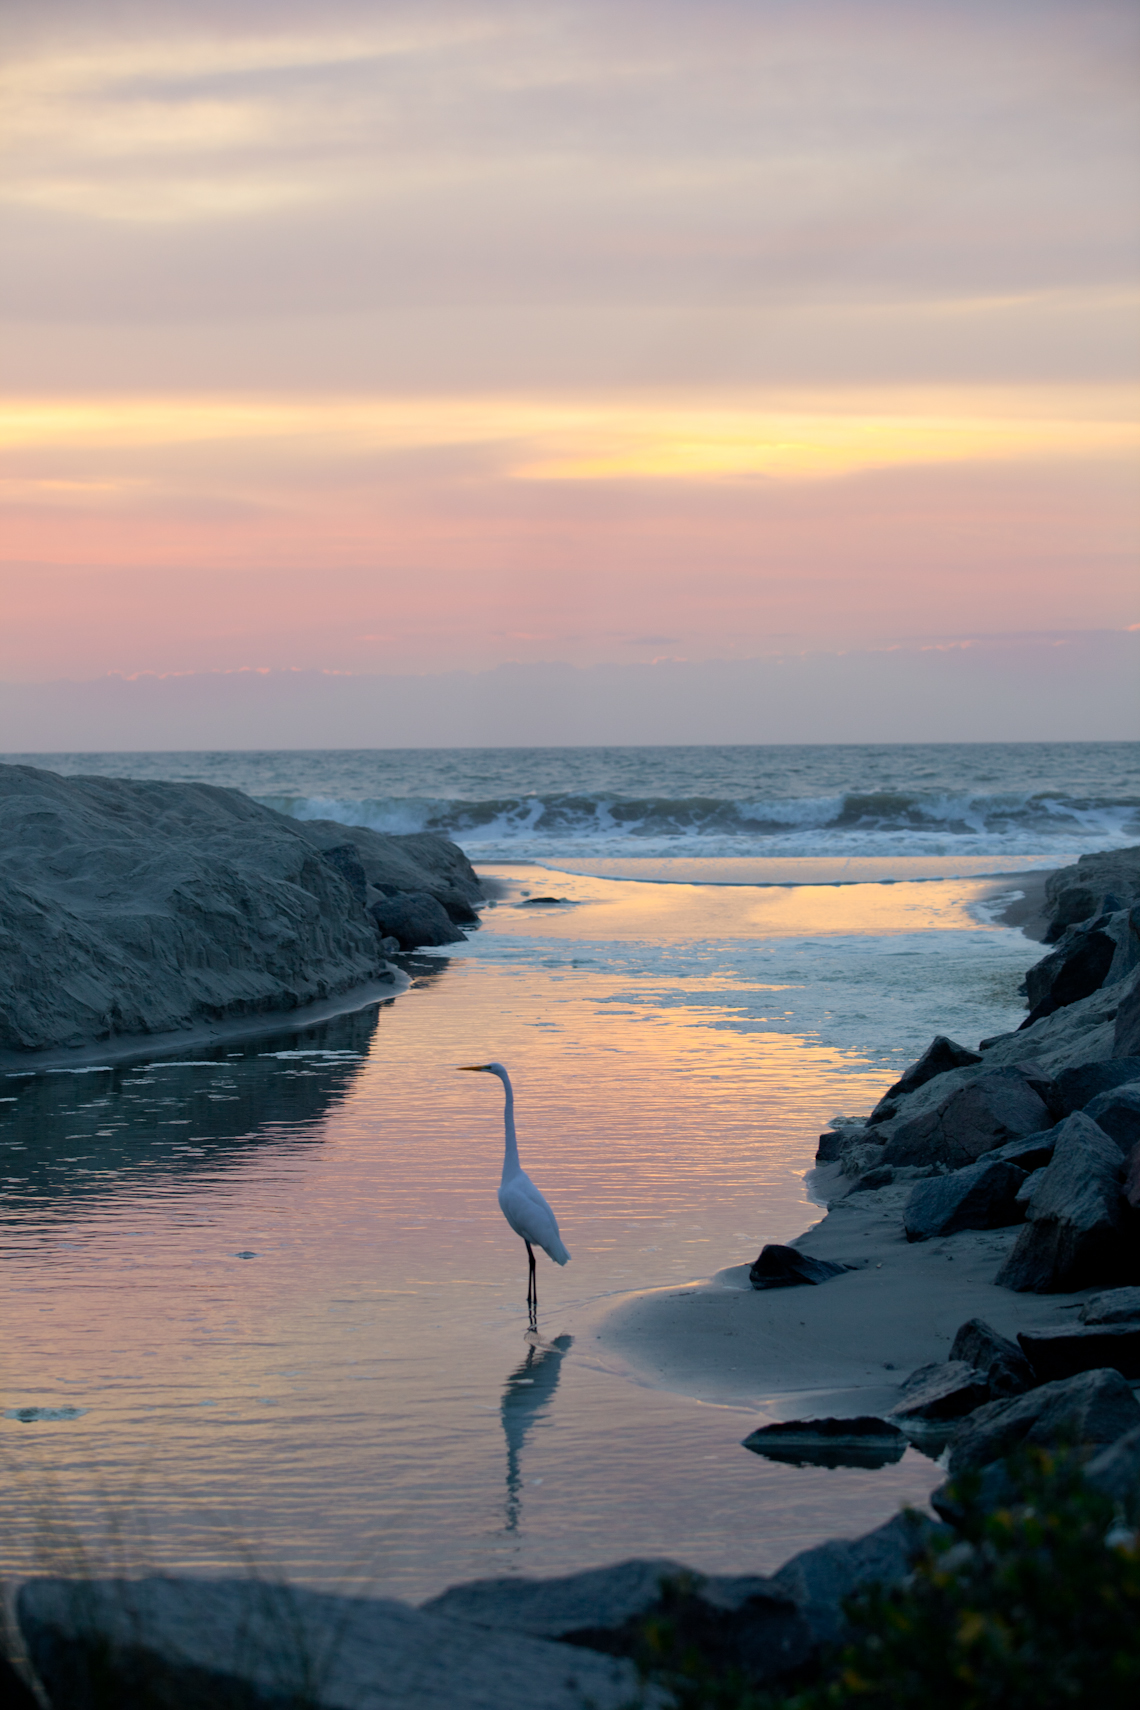 Egret-watches-over-myrtle-beach-dawn-terri-aigner